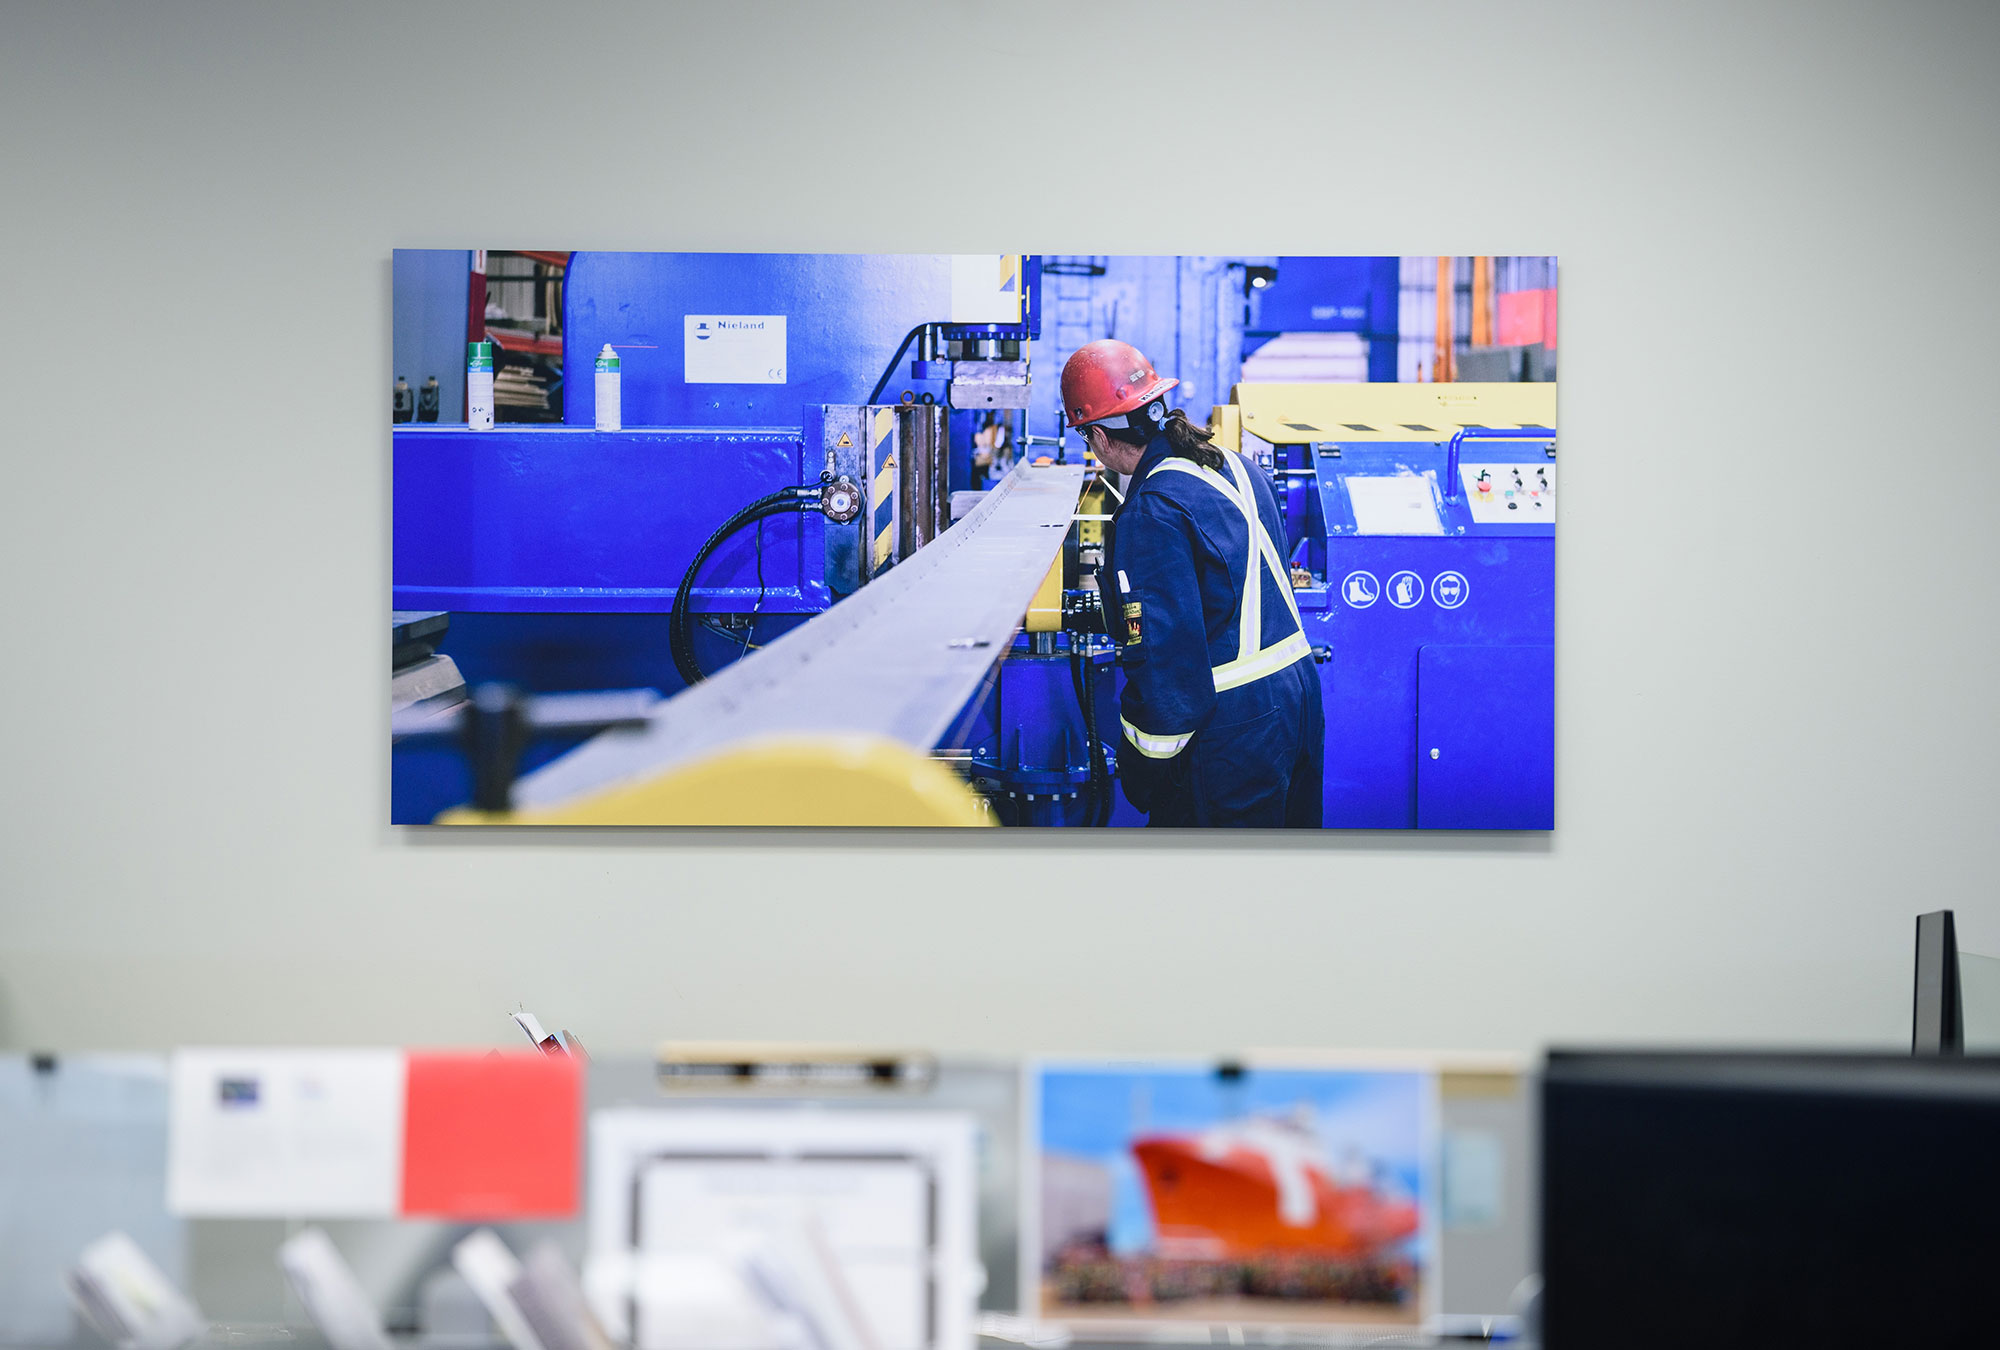 Vivid, high-quality photo art in office environment